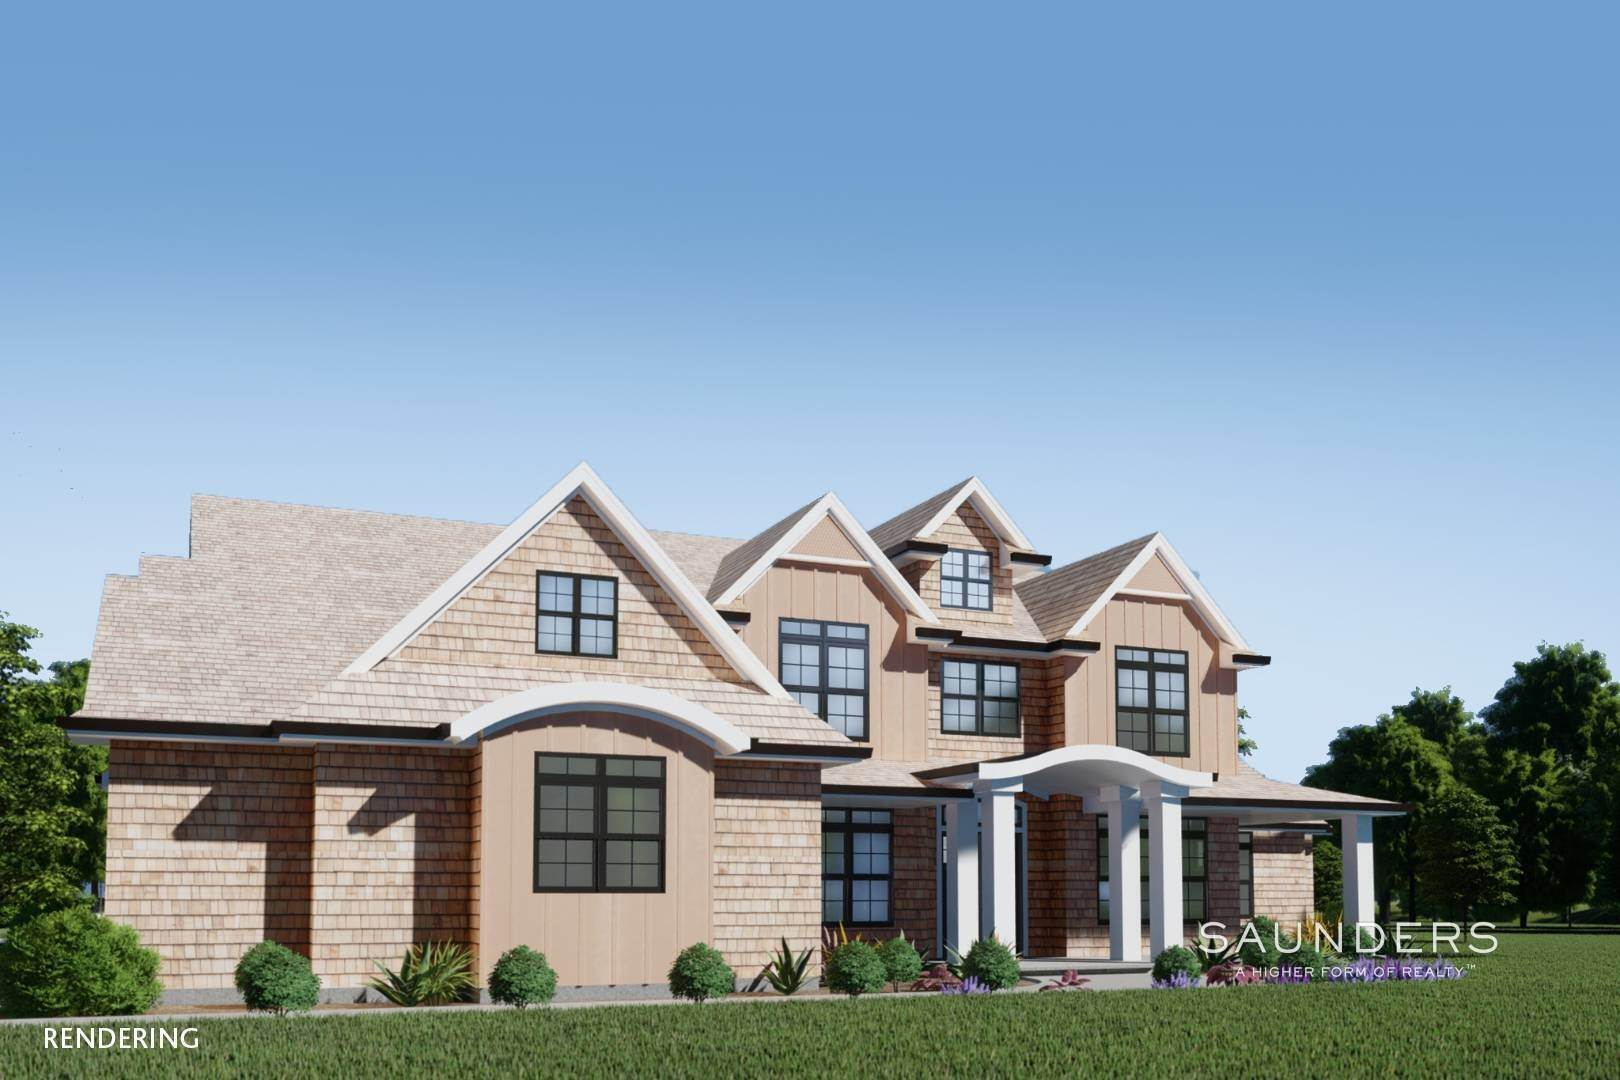 6. Single Family Homes for Sale at New Construction In Sagaponack With Pool 26 Forest Crossing, Sagaponack, Southampton Town, NY 11962